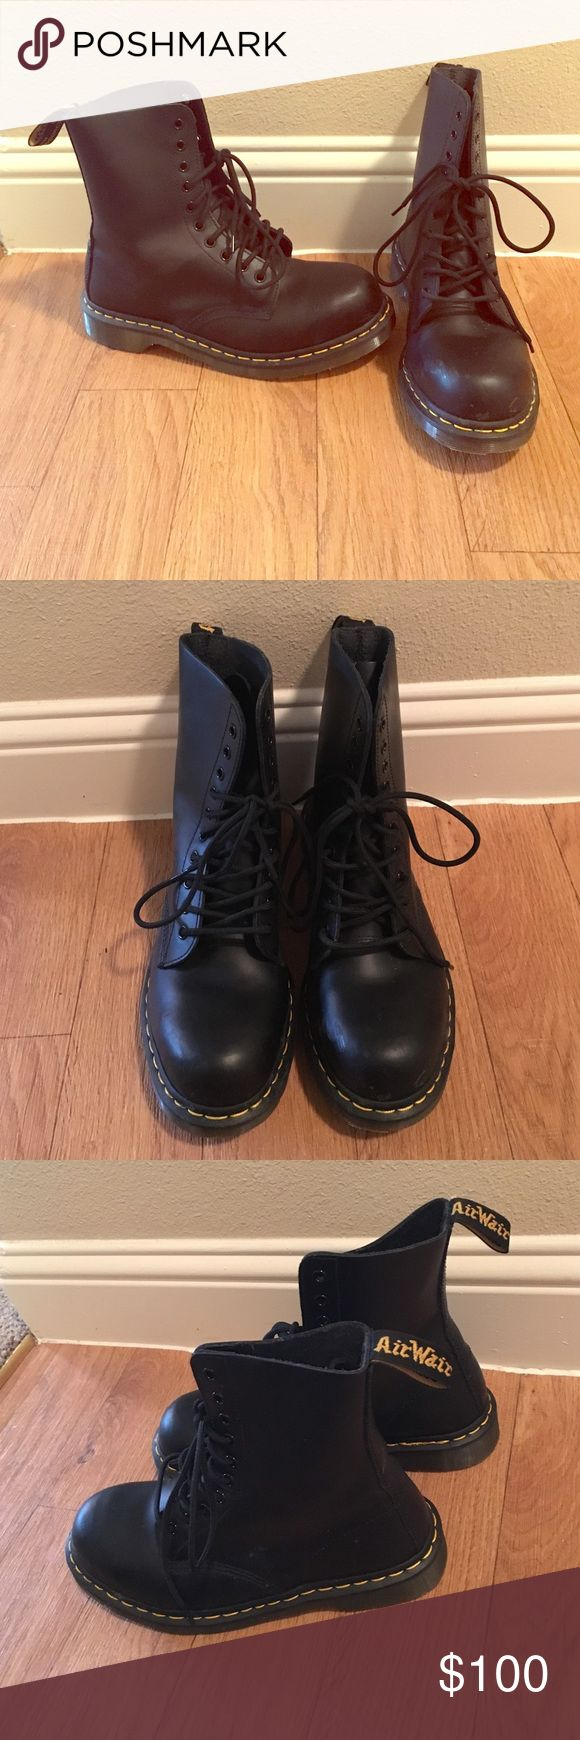 Dr. Martens Classic 1919 Steel Toe Boot Black leather boots. Worn once. The Dr. Martens 1919 10 Eye Steel Cap Boot Unisex embodies all that is true and unique to Dr. Martens. Dr. Martens Shoes Lace Up Boots